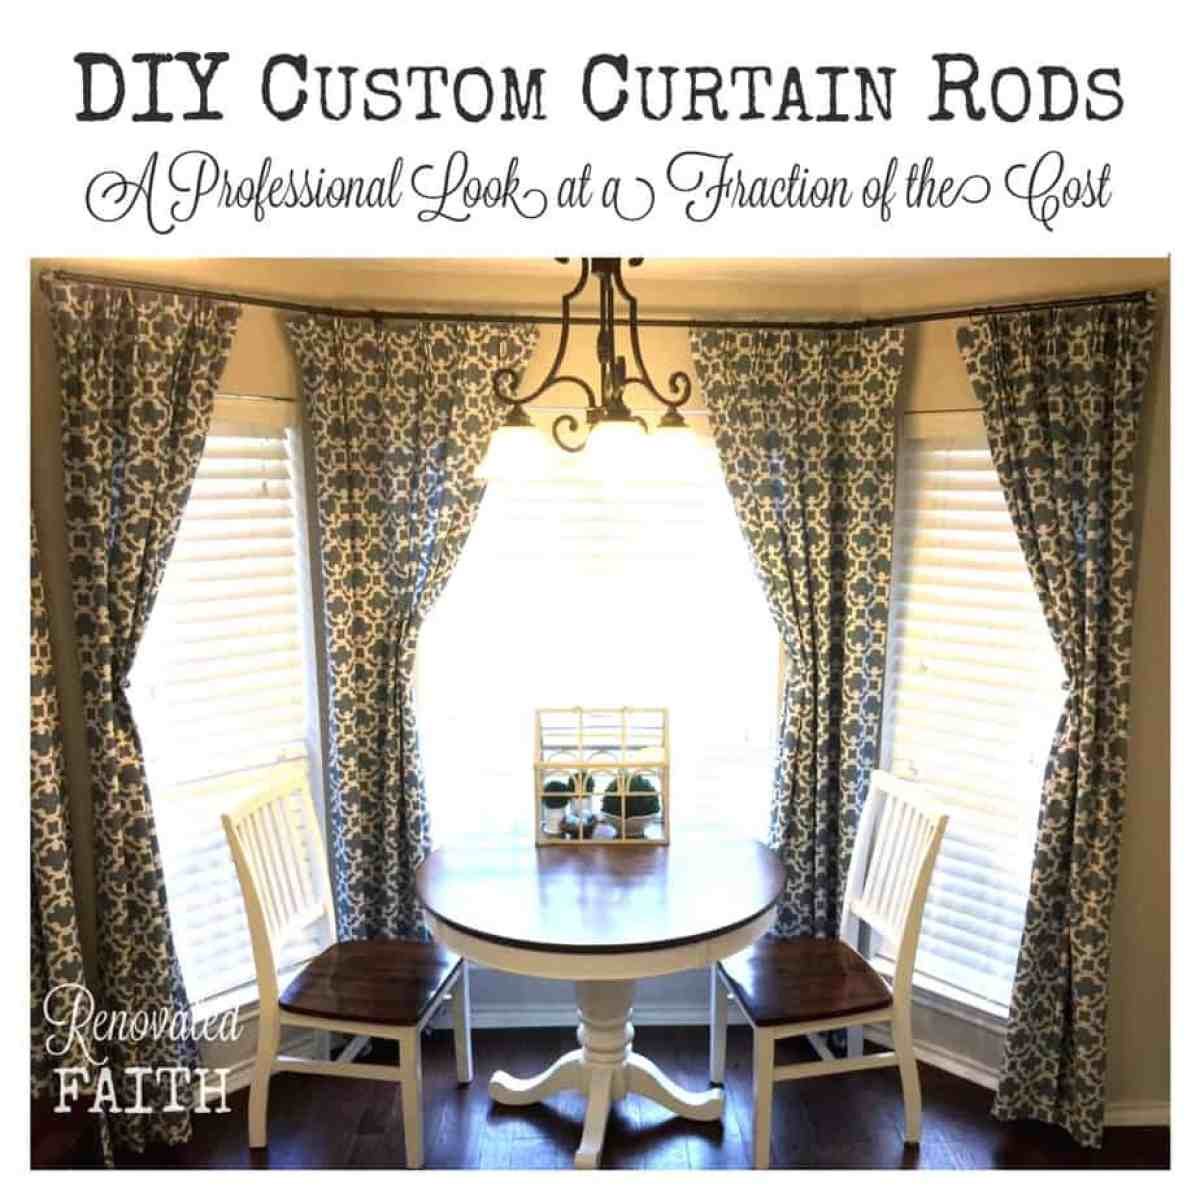 DIY Custom Curtain Rods